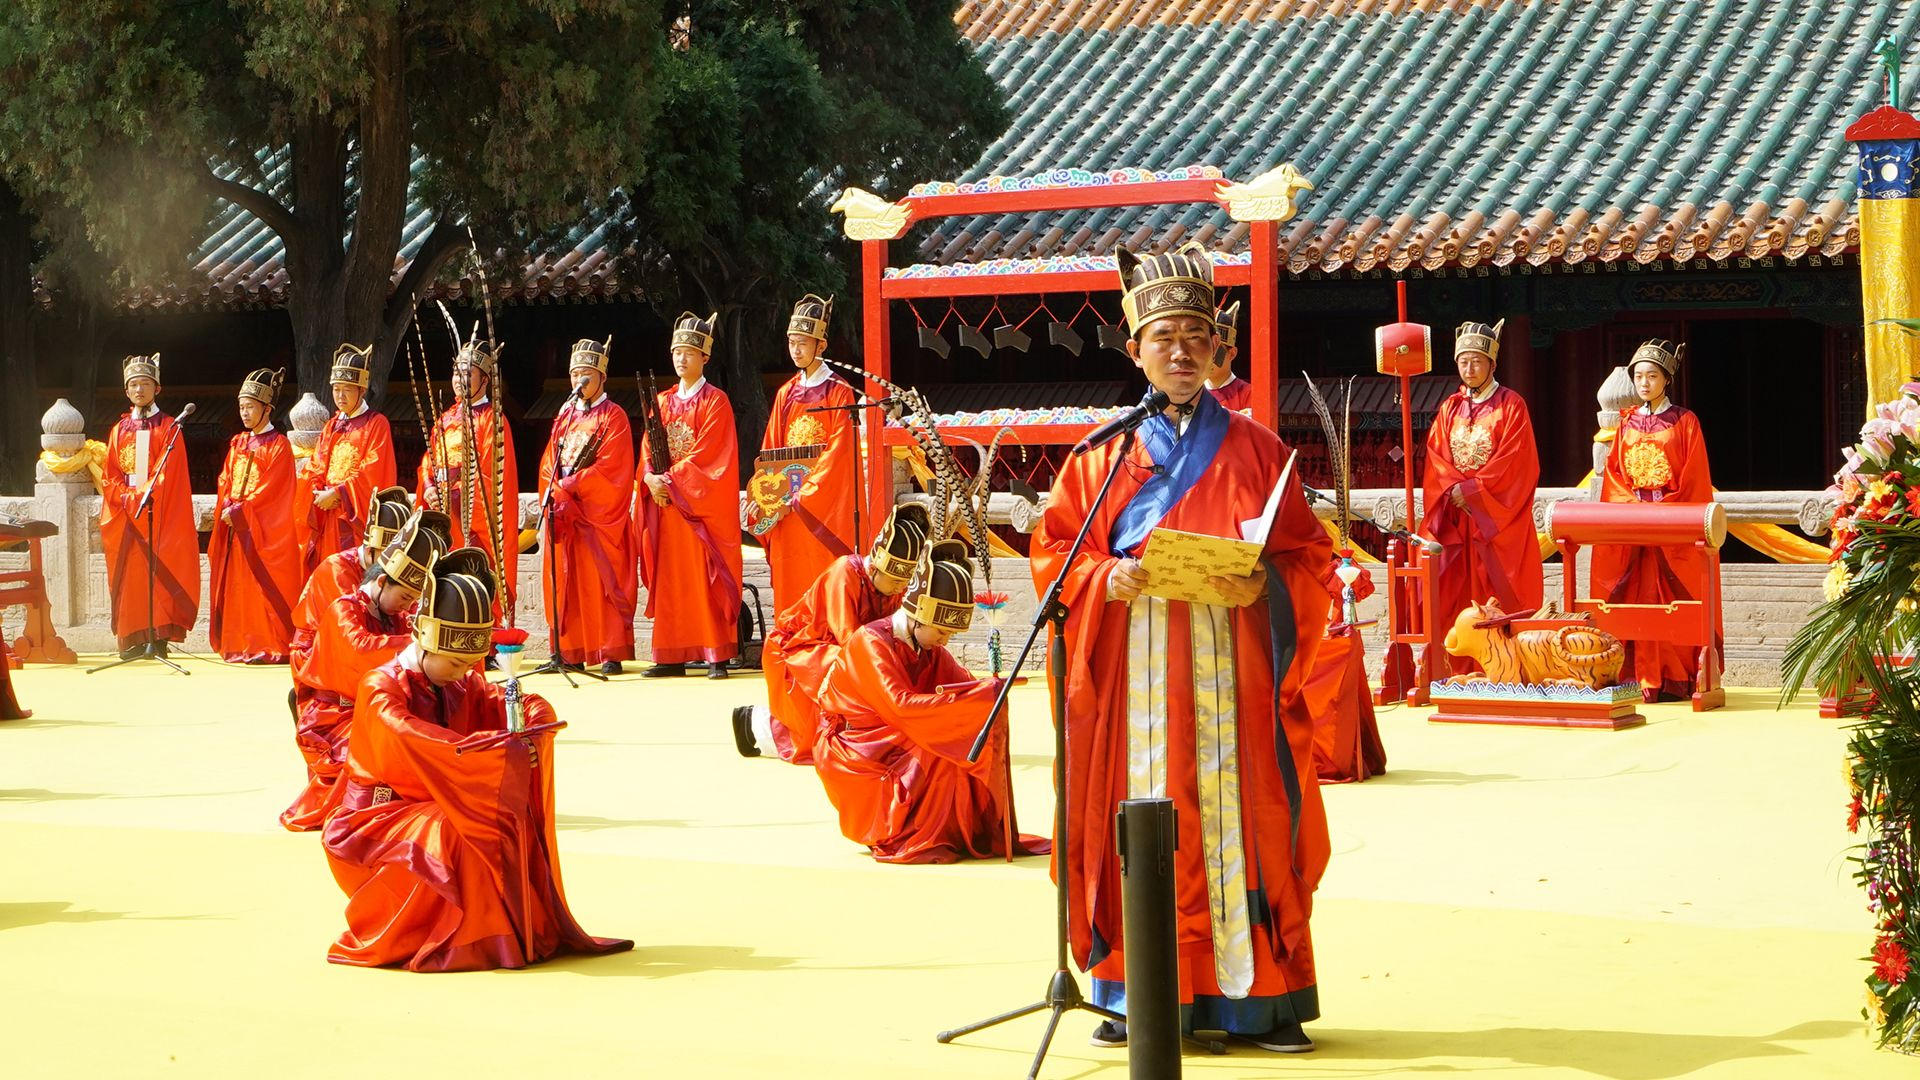 Confucious Ceremony. This is from Tracing Heritage [Photo of the day - October 2021]